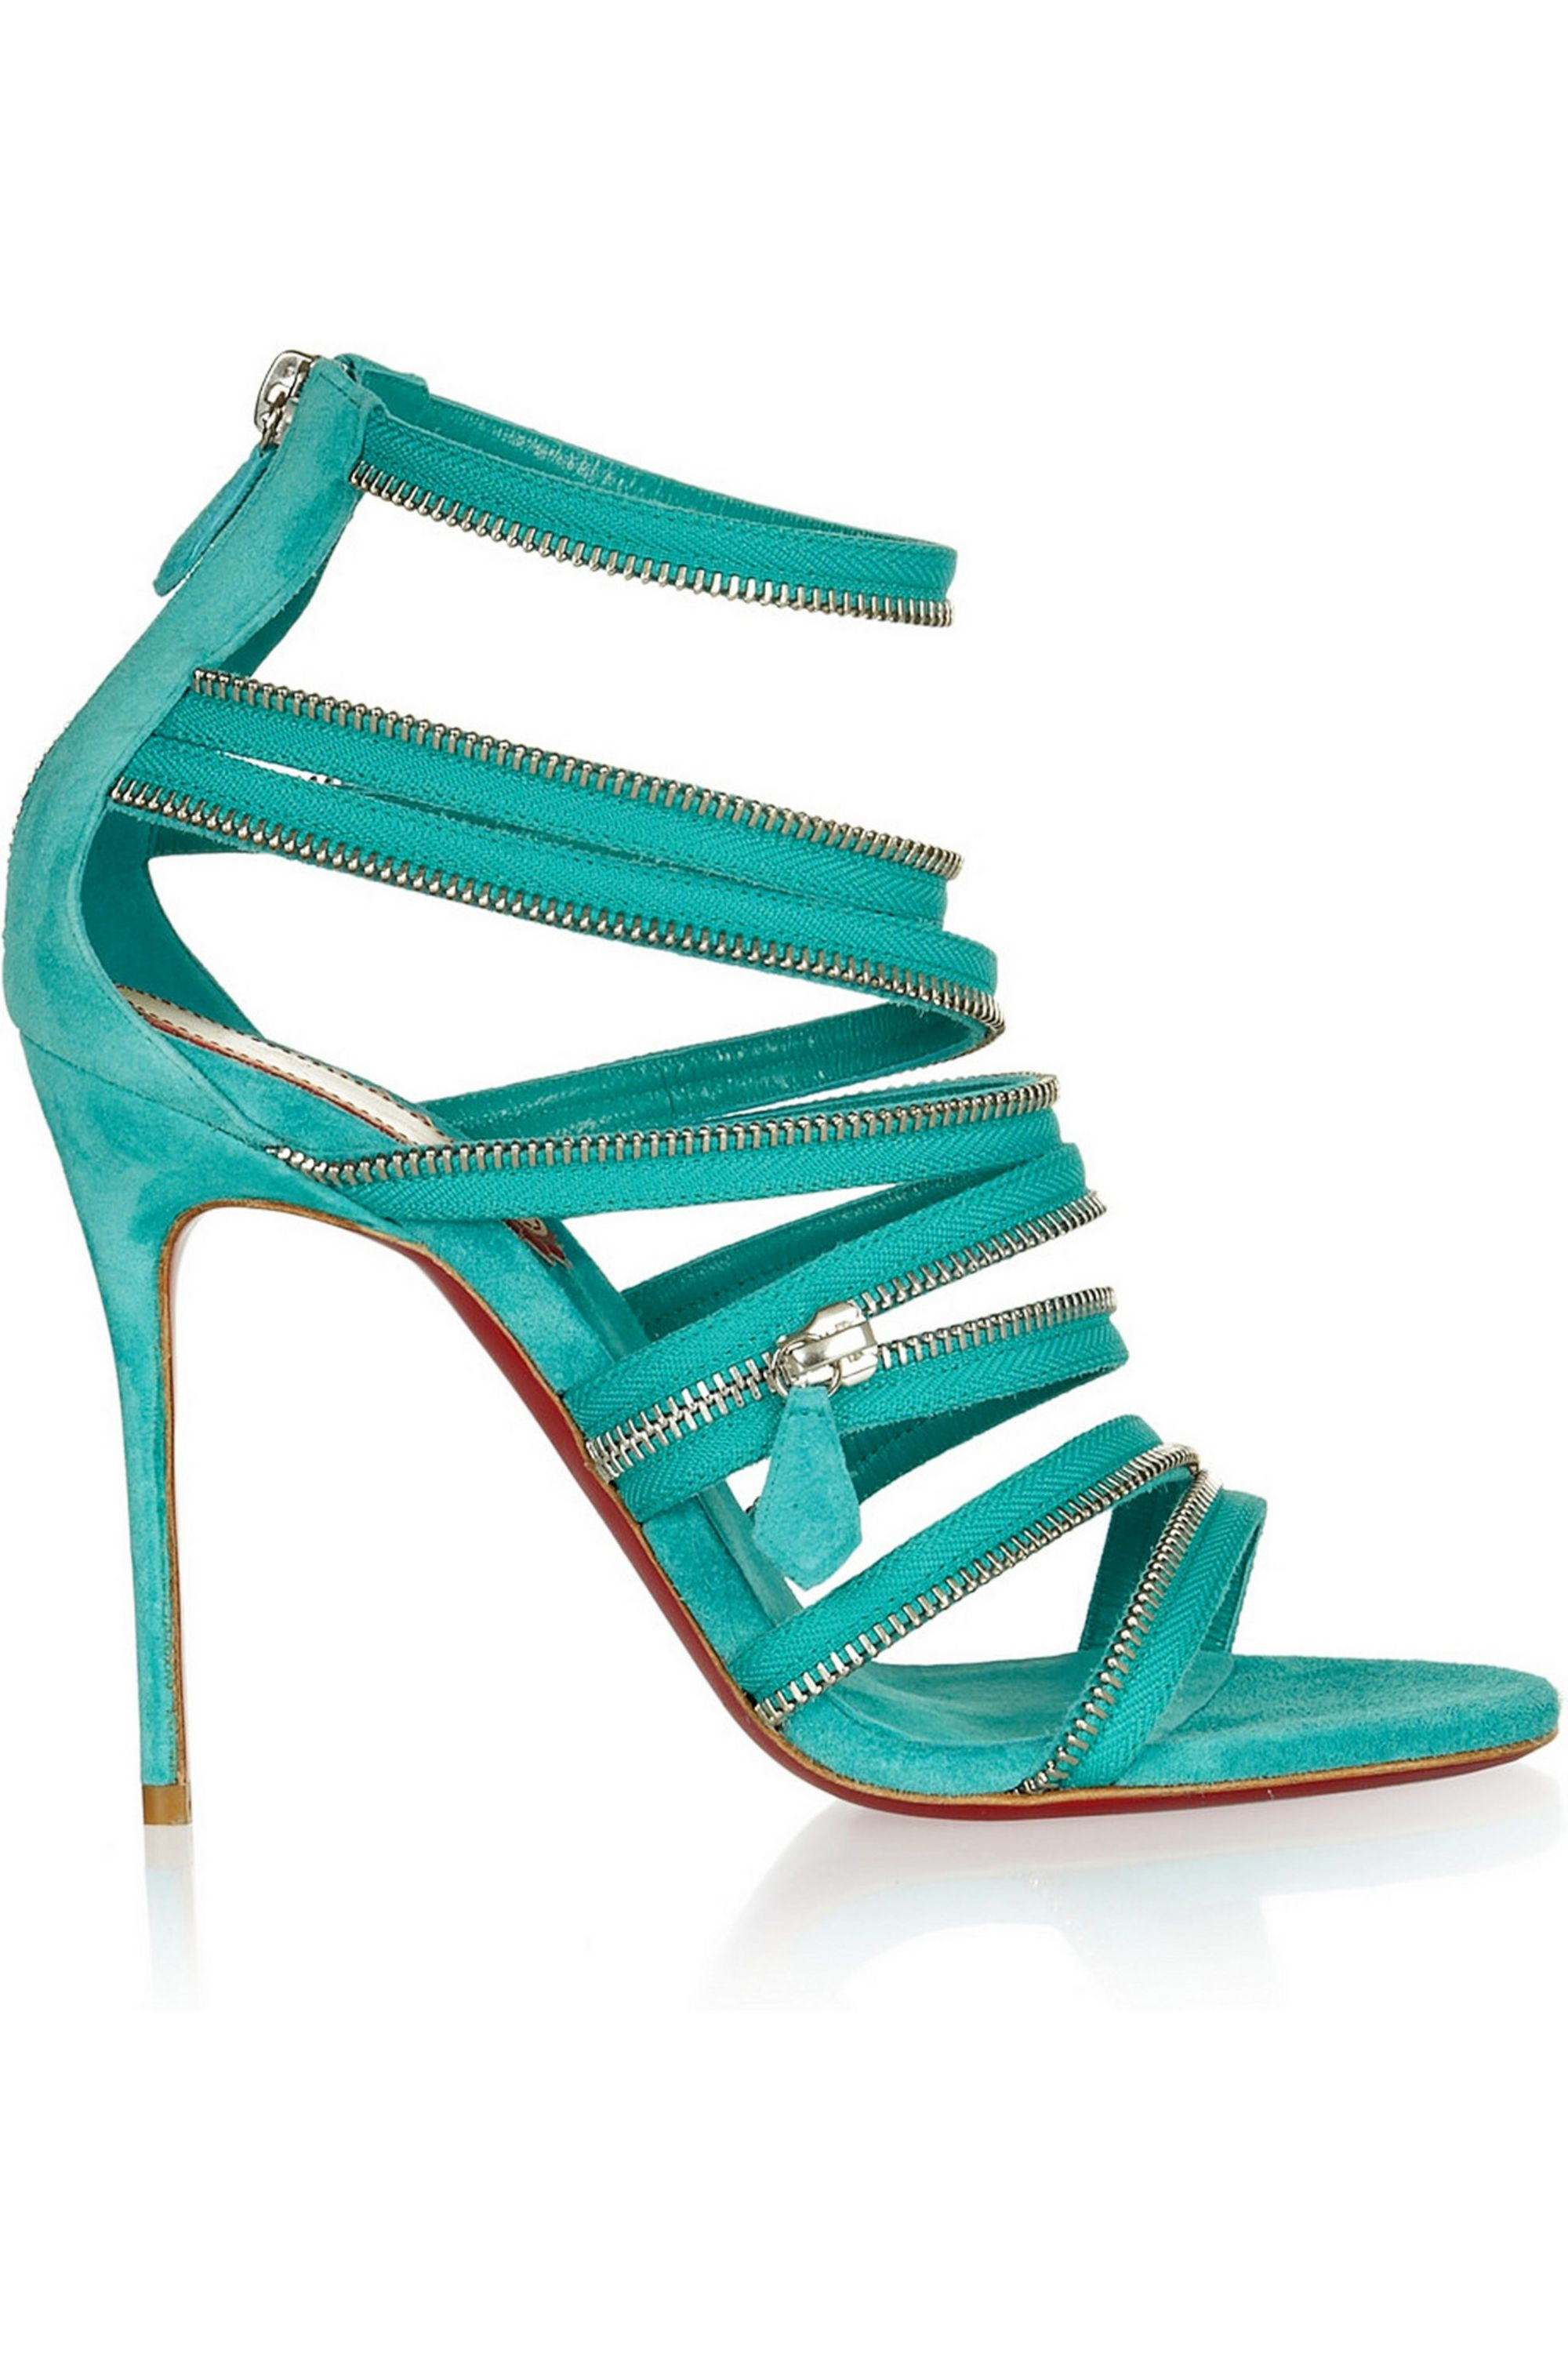 Christian Louboutin 20th Anniversary Unzip 100 suede sandals